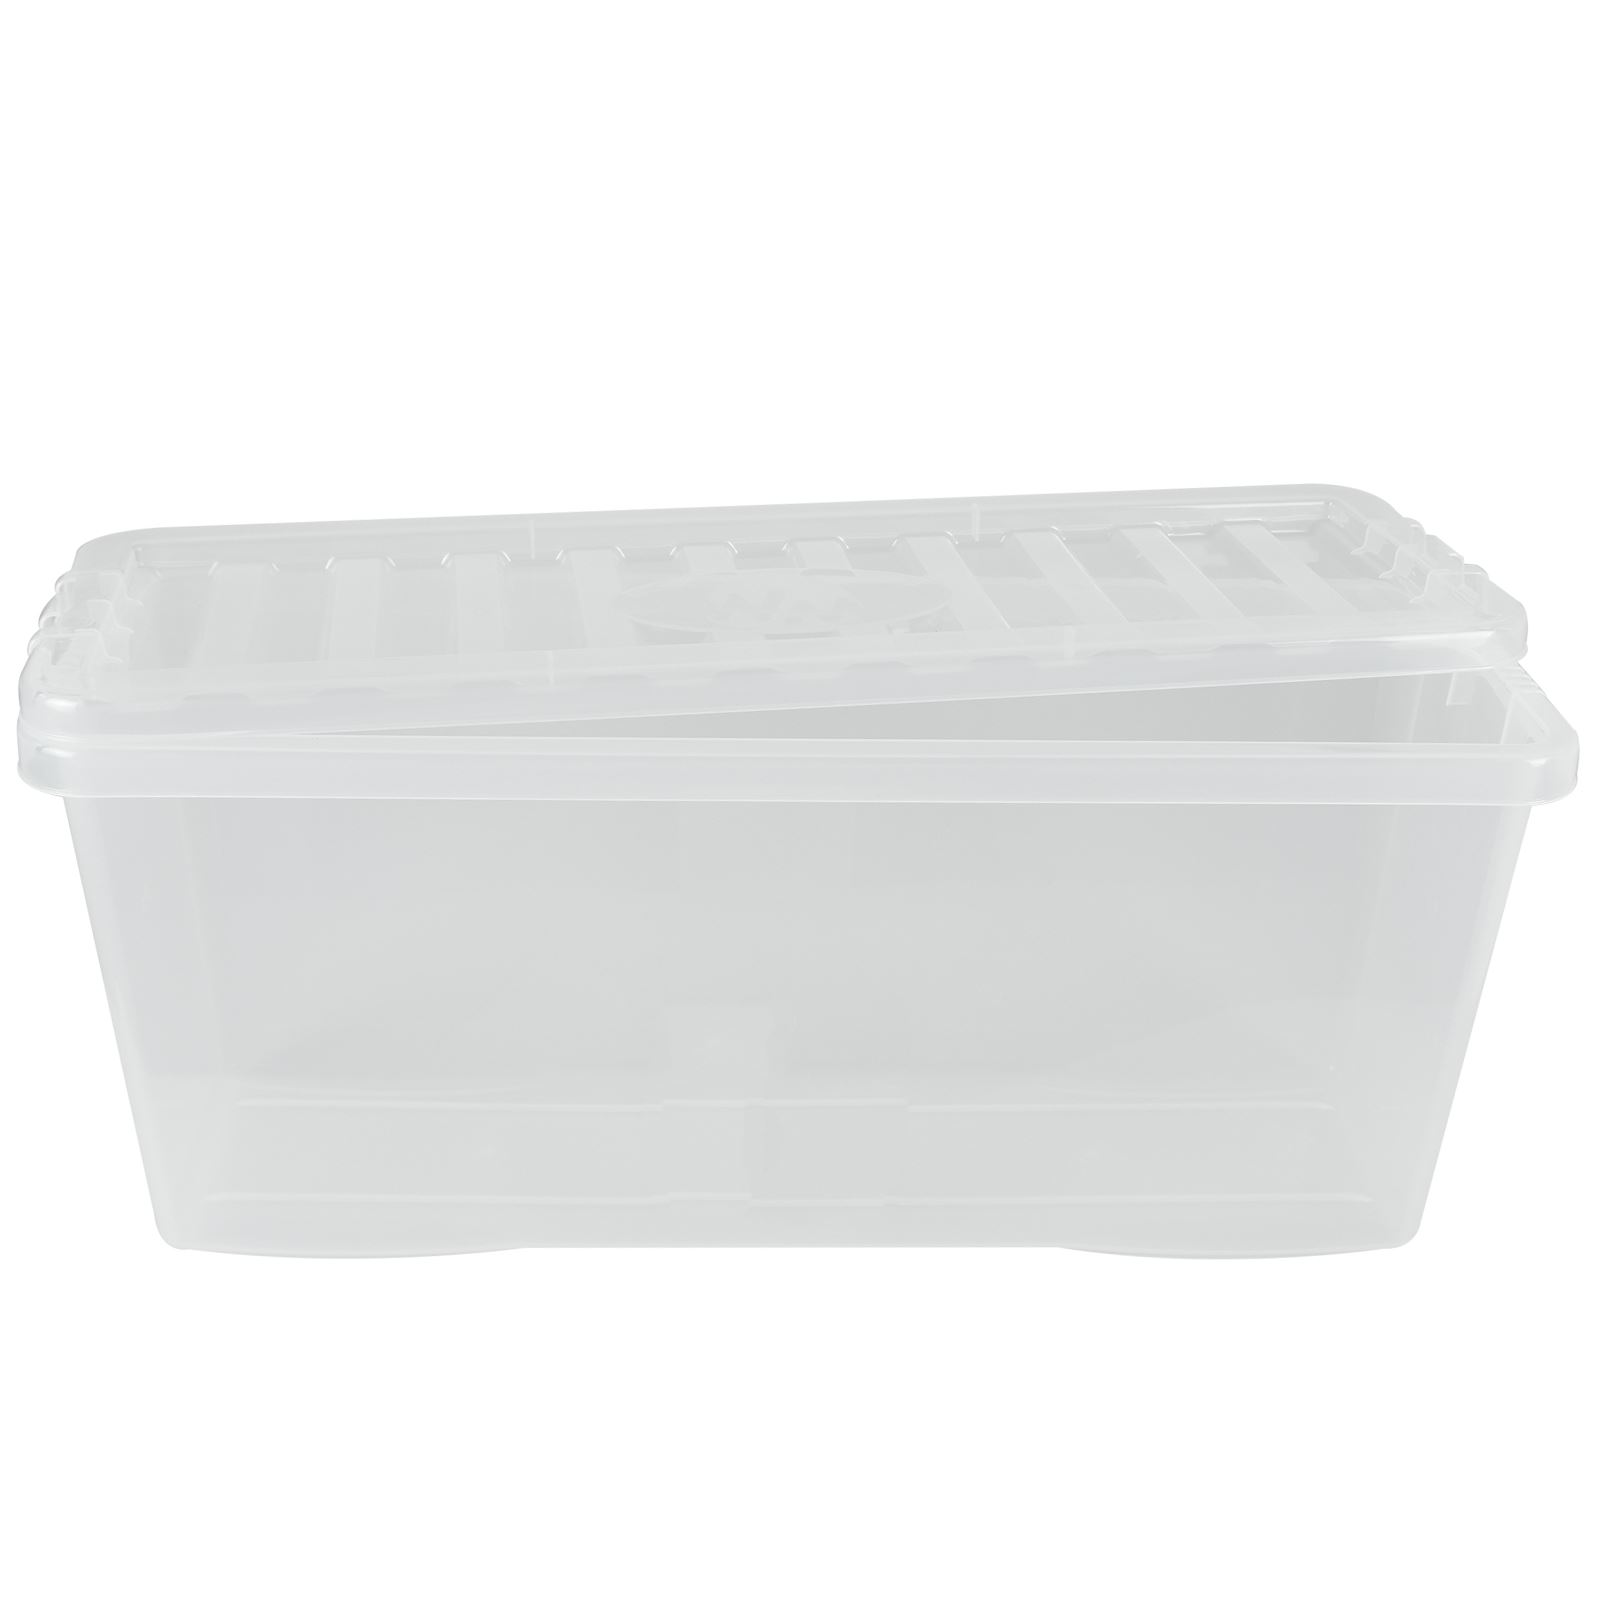 Wham-Crystal-Clear-Plastic-Storage-Box-Secure-Clip-on-Lid-Under-Bed-Space-Save thumbnail 12